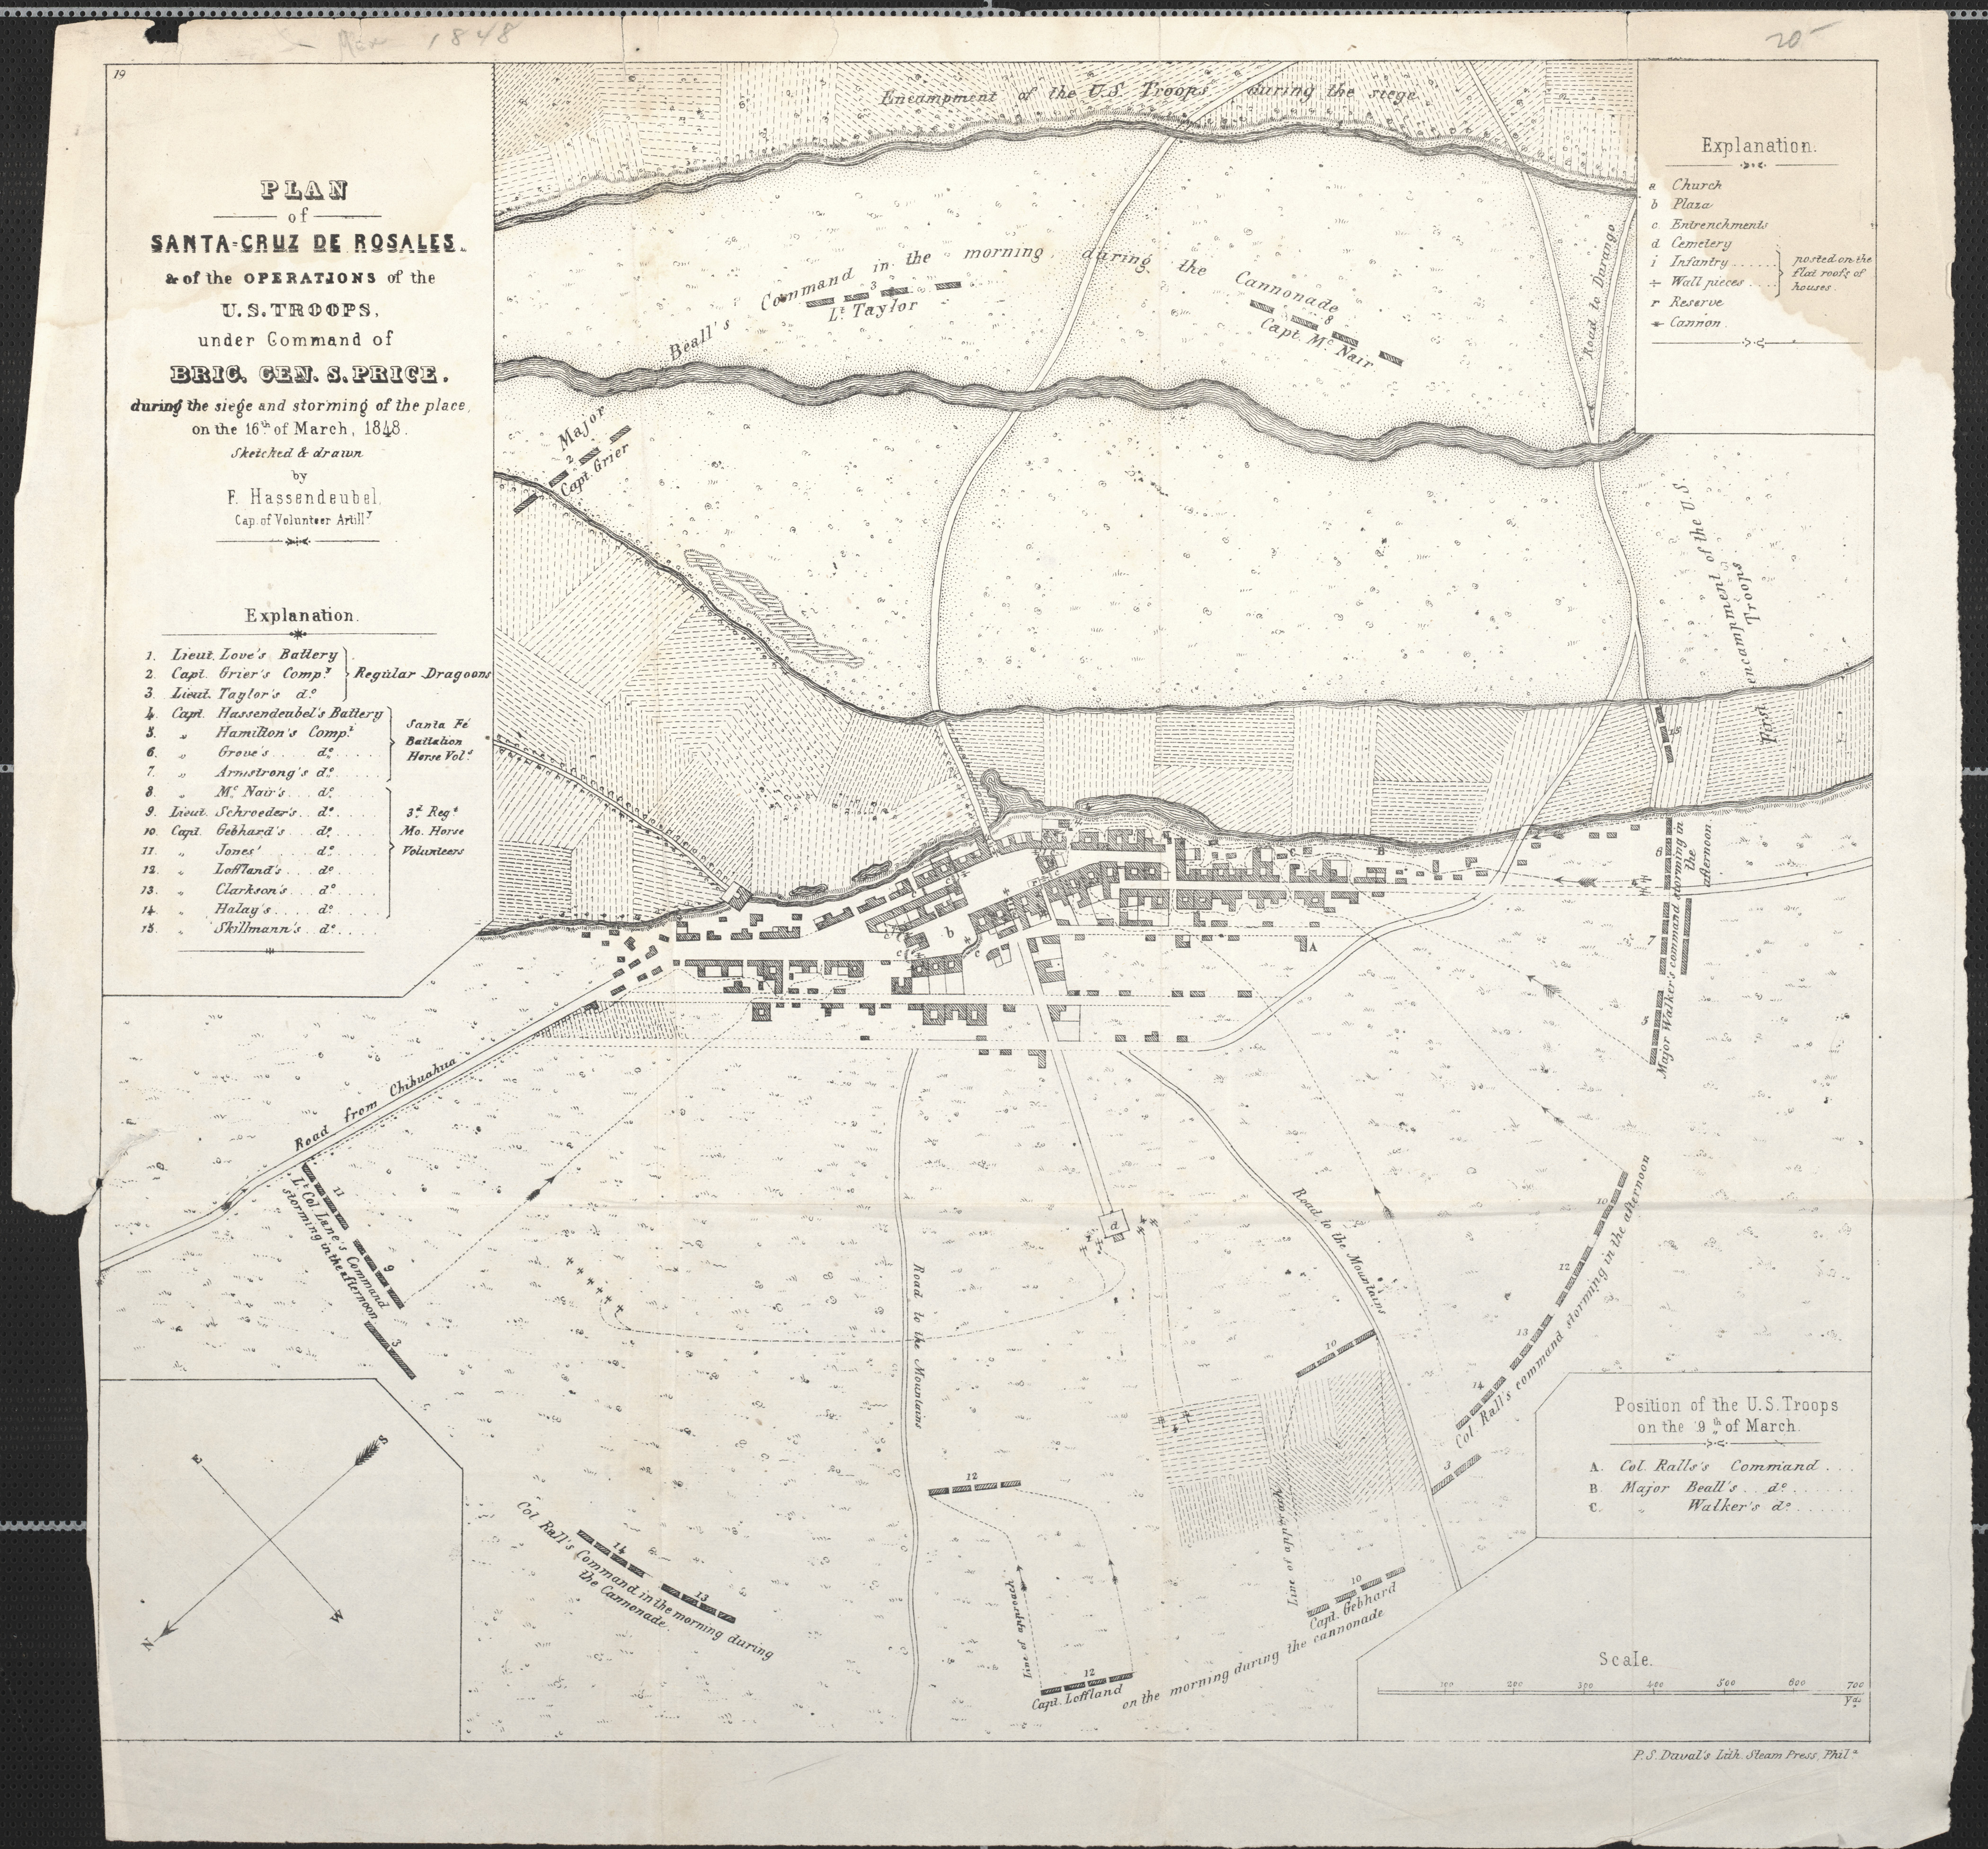 Maps: Plan of Santa-Cruz de Rosales & the Operations of the ... on golden gate bridge on us map, cupertino on us map, irvine on us map, sonoma on us map, san gabriel on us map, reno on us map, saint augustine on us map, orange county on us map, little rock on us map, mount shasta on us map, san clemente on us map, torrance on us map, arcadia on us map, burbank on us map, stockton on us map, oakland on us map, madison on us map, alamo on us map, columbia on us map, mt. lassen on us map,